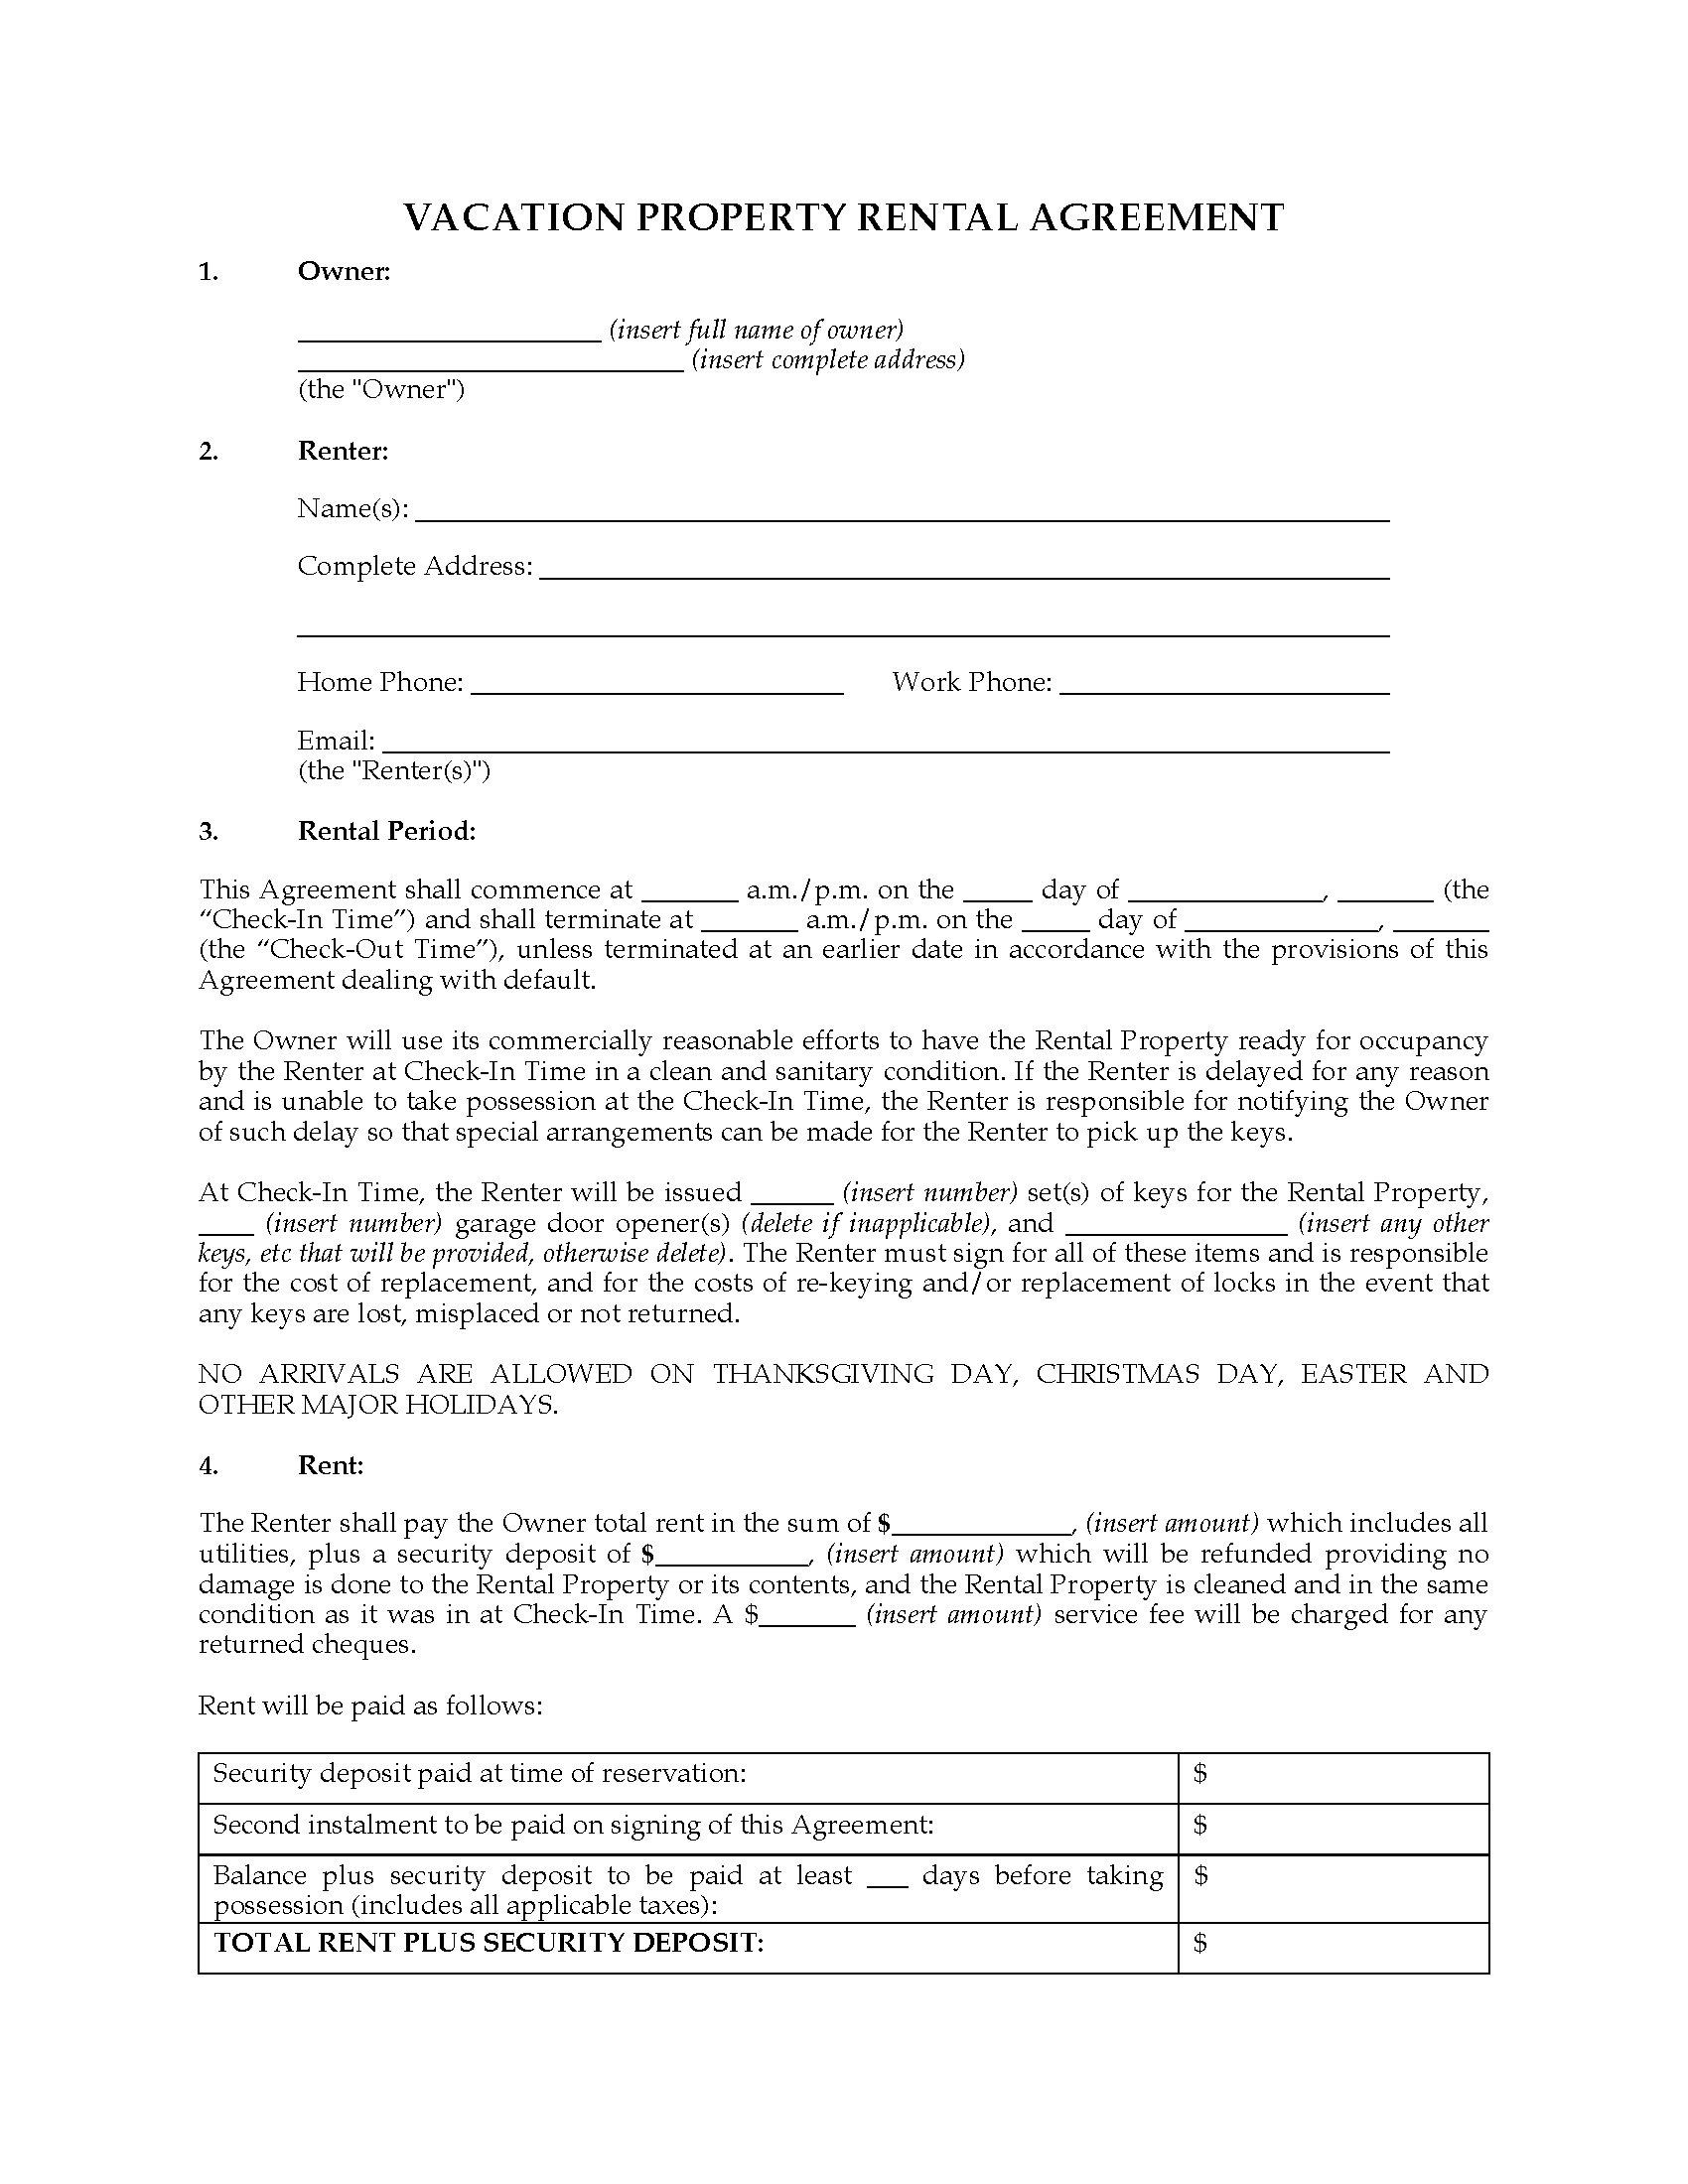 Pei Vacation Property Rental Agreement Legal Forms And Business